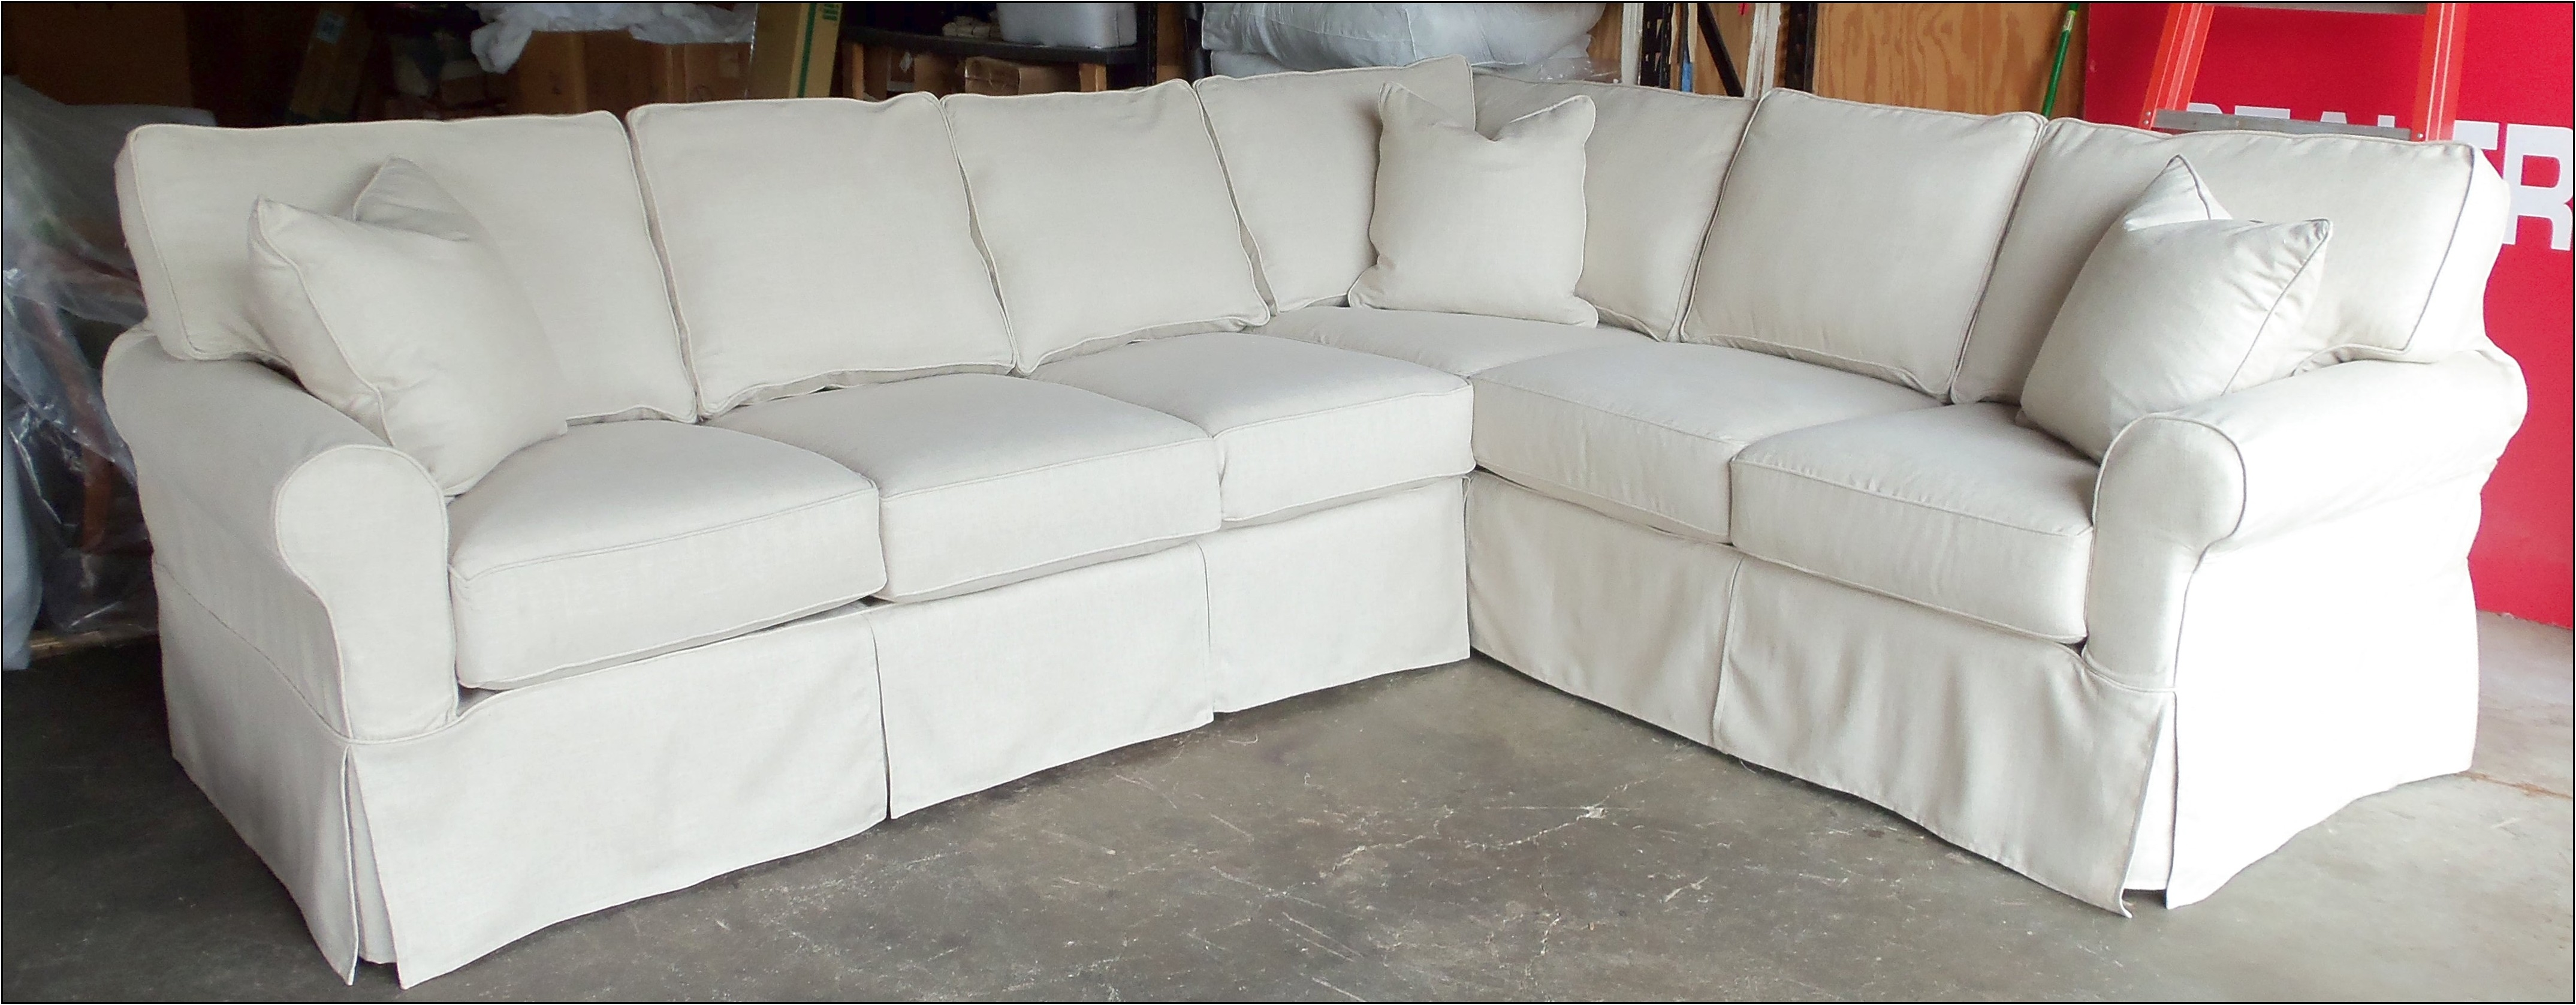 Sofa Restposten 12 Best Collection Of Clearance Sofa Covers